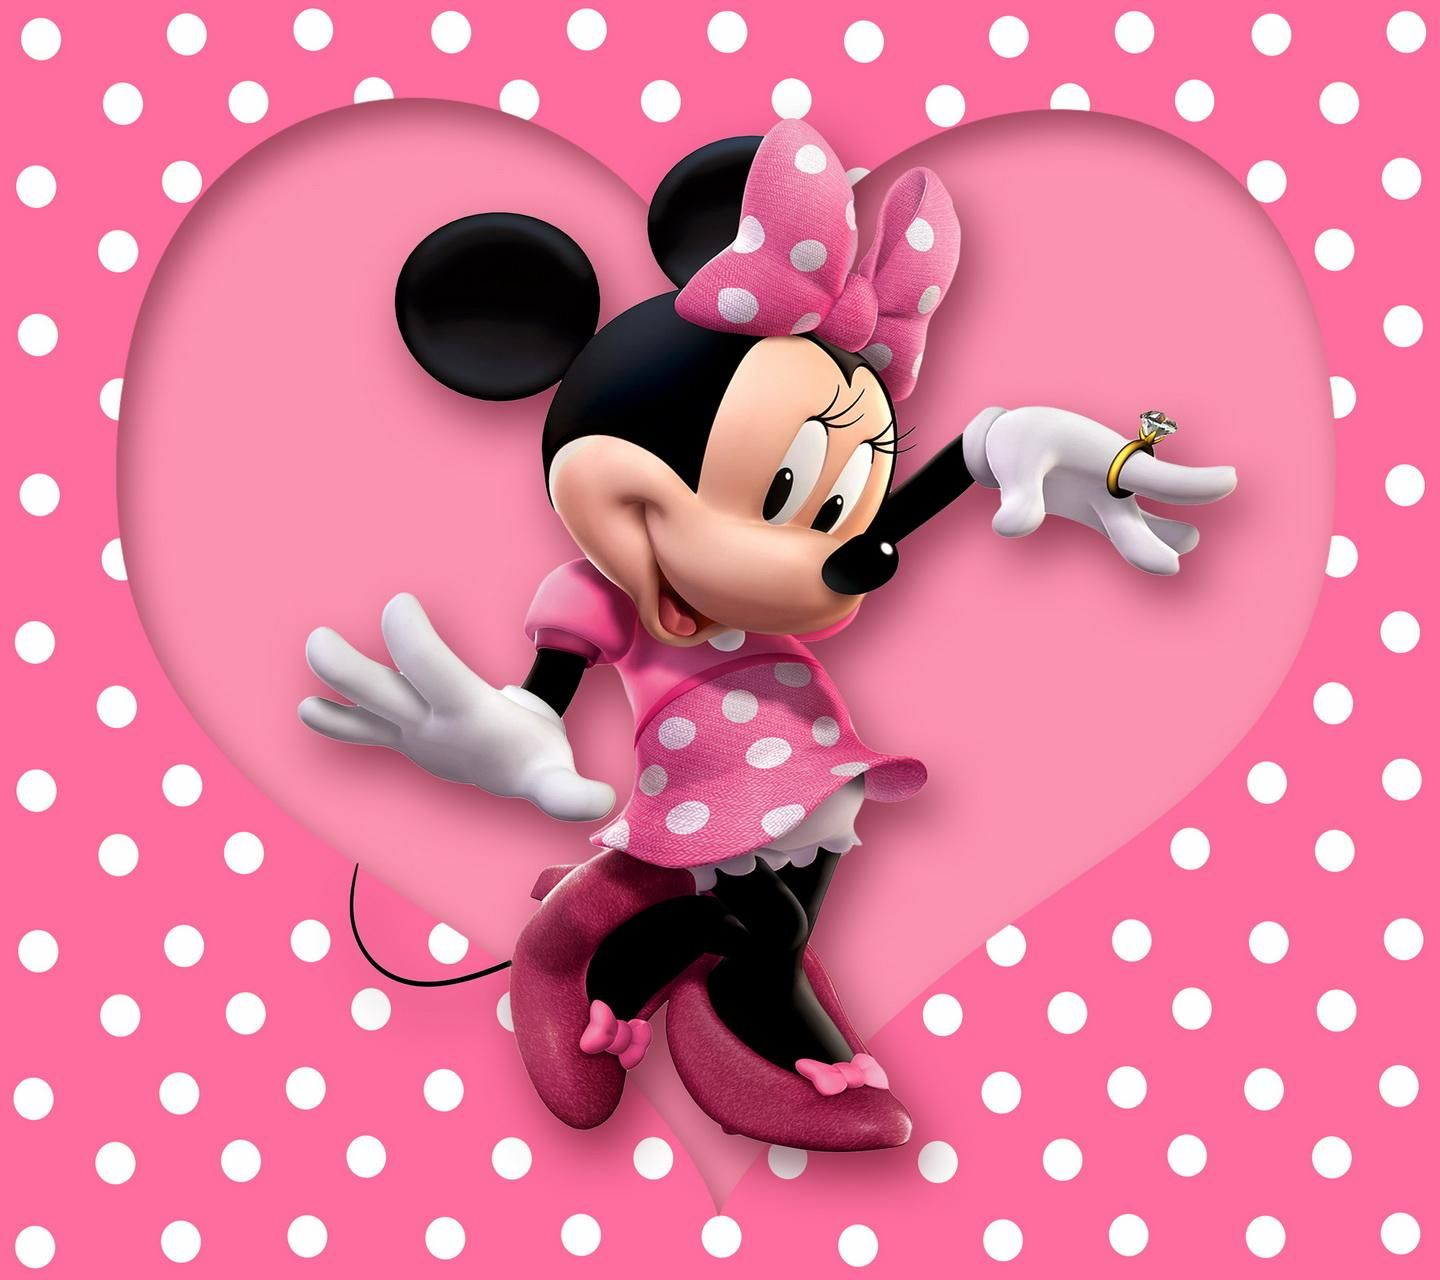 Download Minnie Mouse Wallpaper By Marika Ed Free On Zedge Now Browse Millions Of Popu Minnie Mouse Images Mickey Mouse Wallpaper Minnie Mouse Cartoons